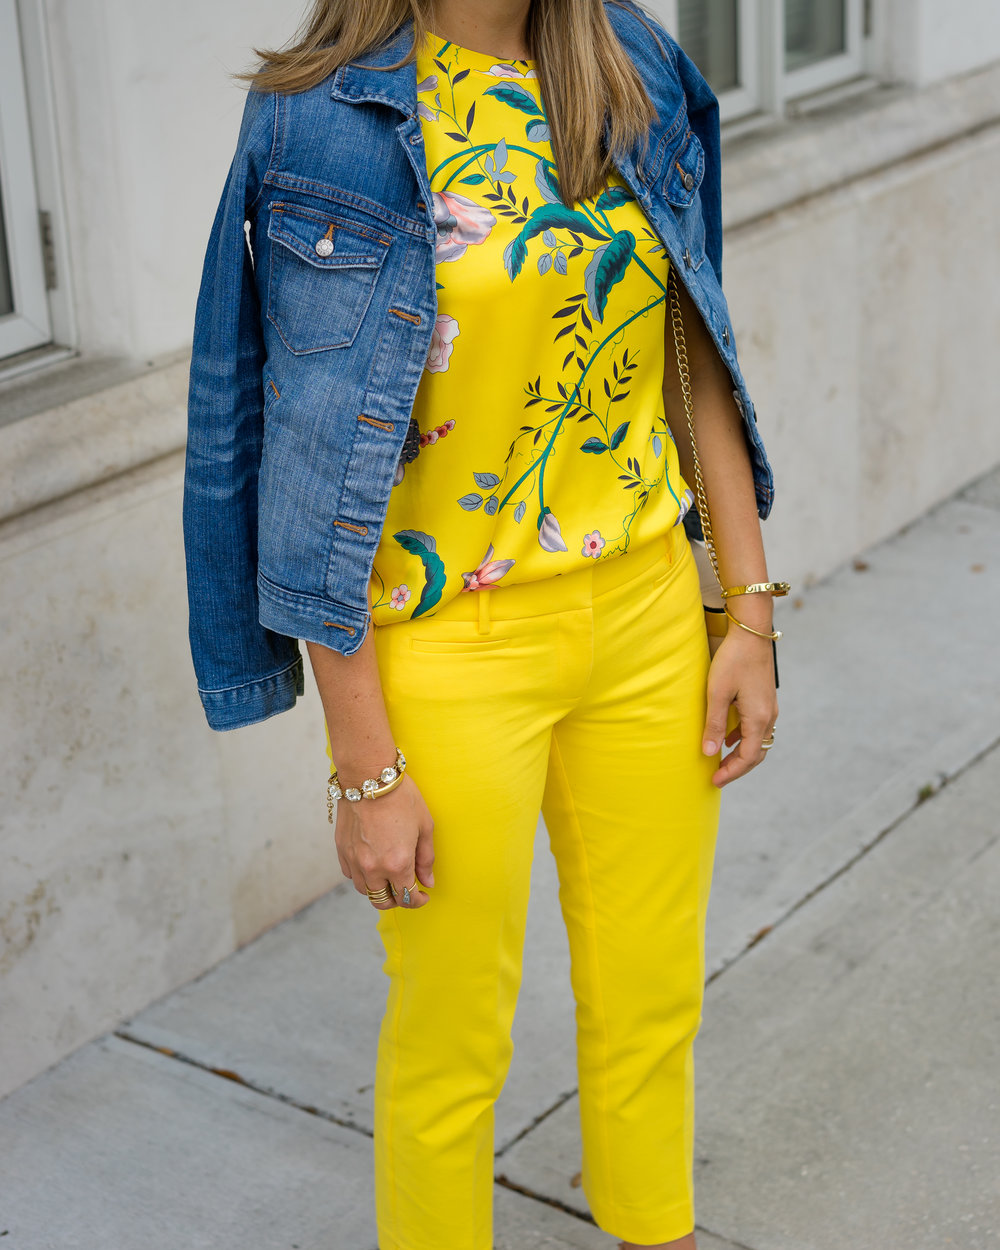 Denim jacket, yellow floral, yellow pants